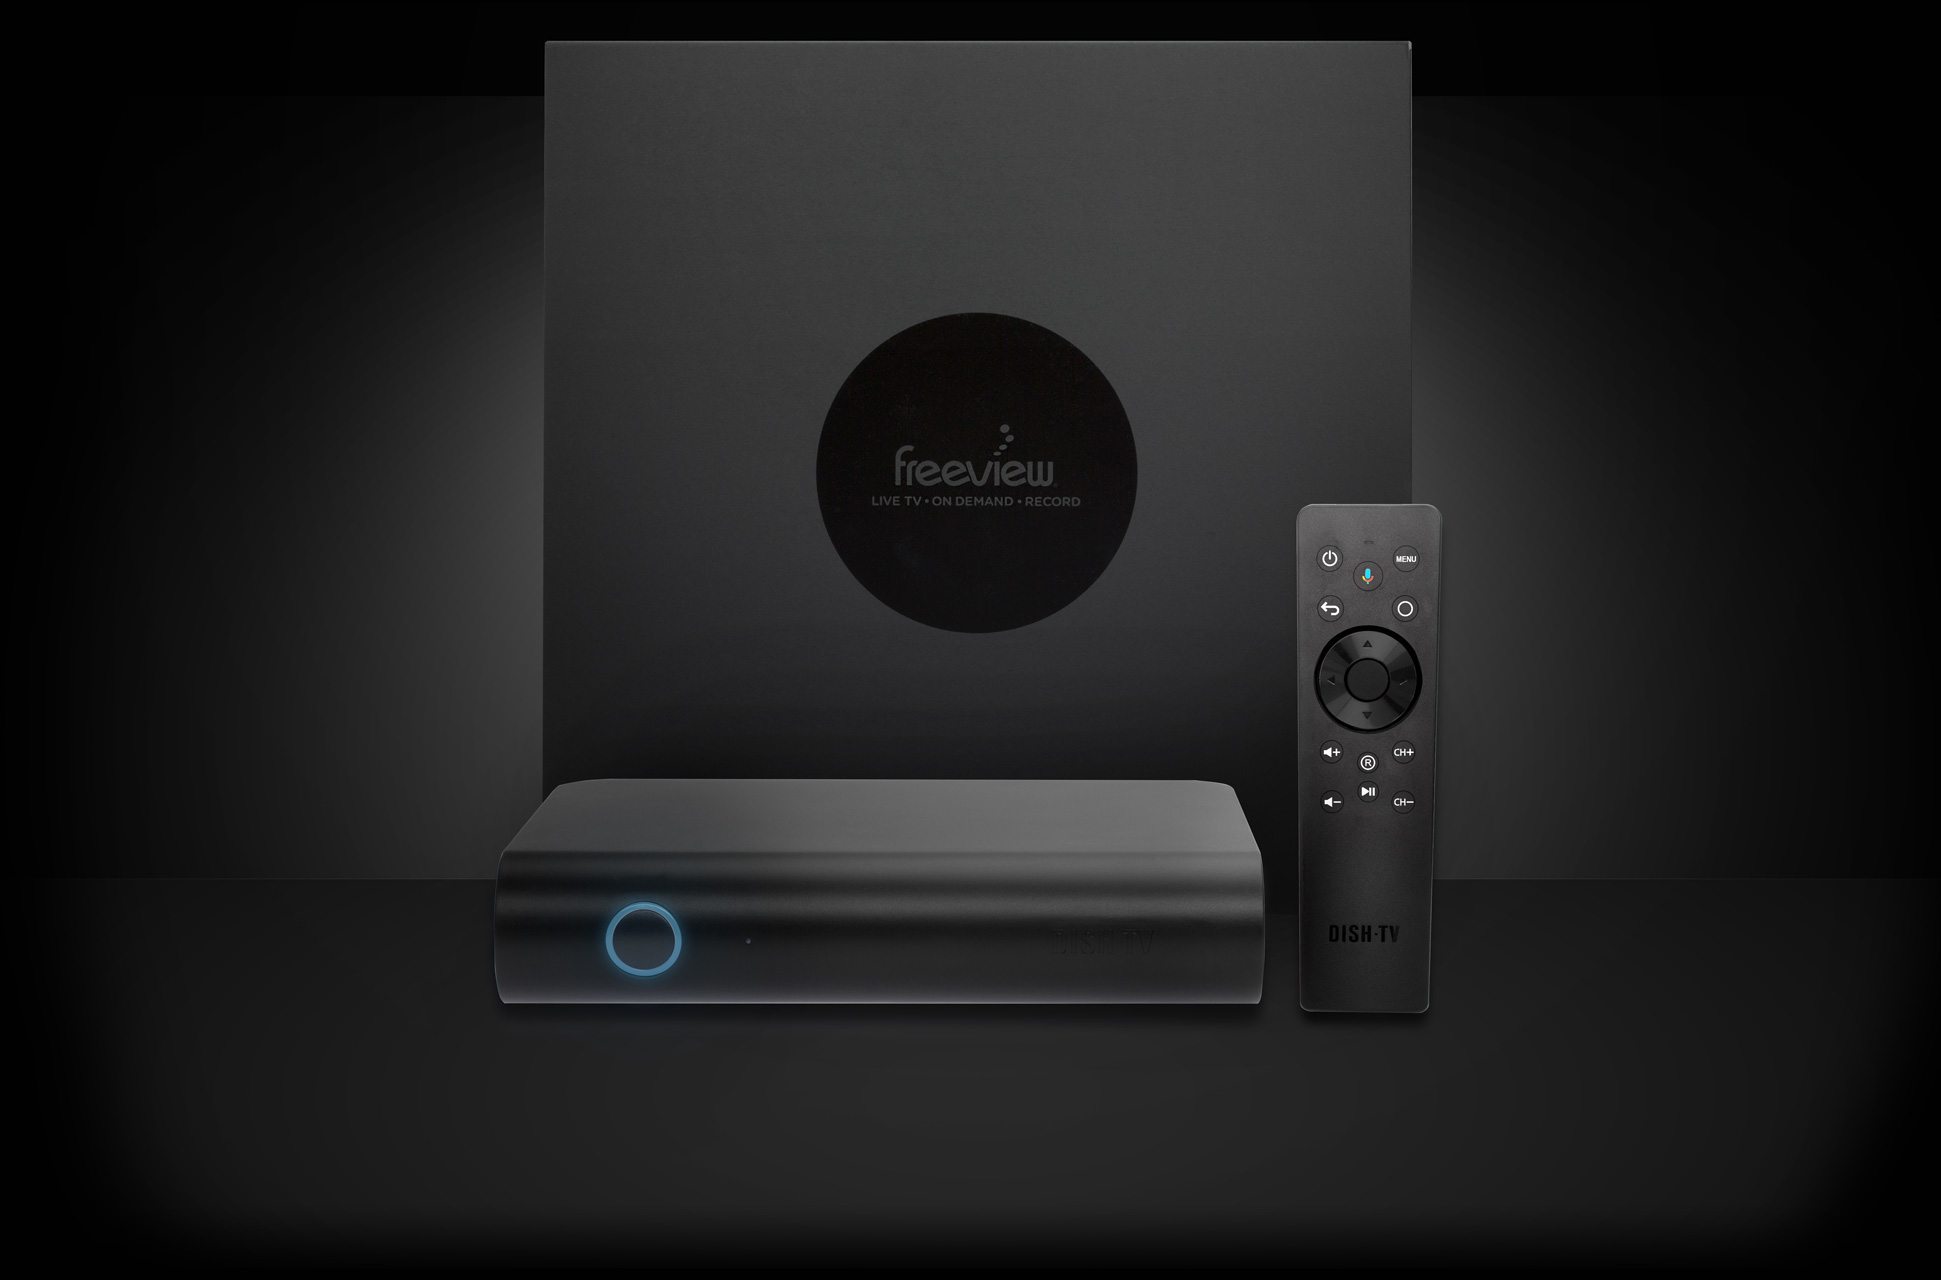 freeview-recorder-package.jpg